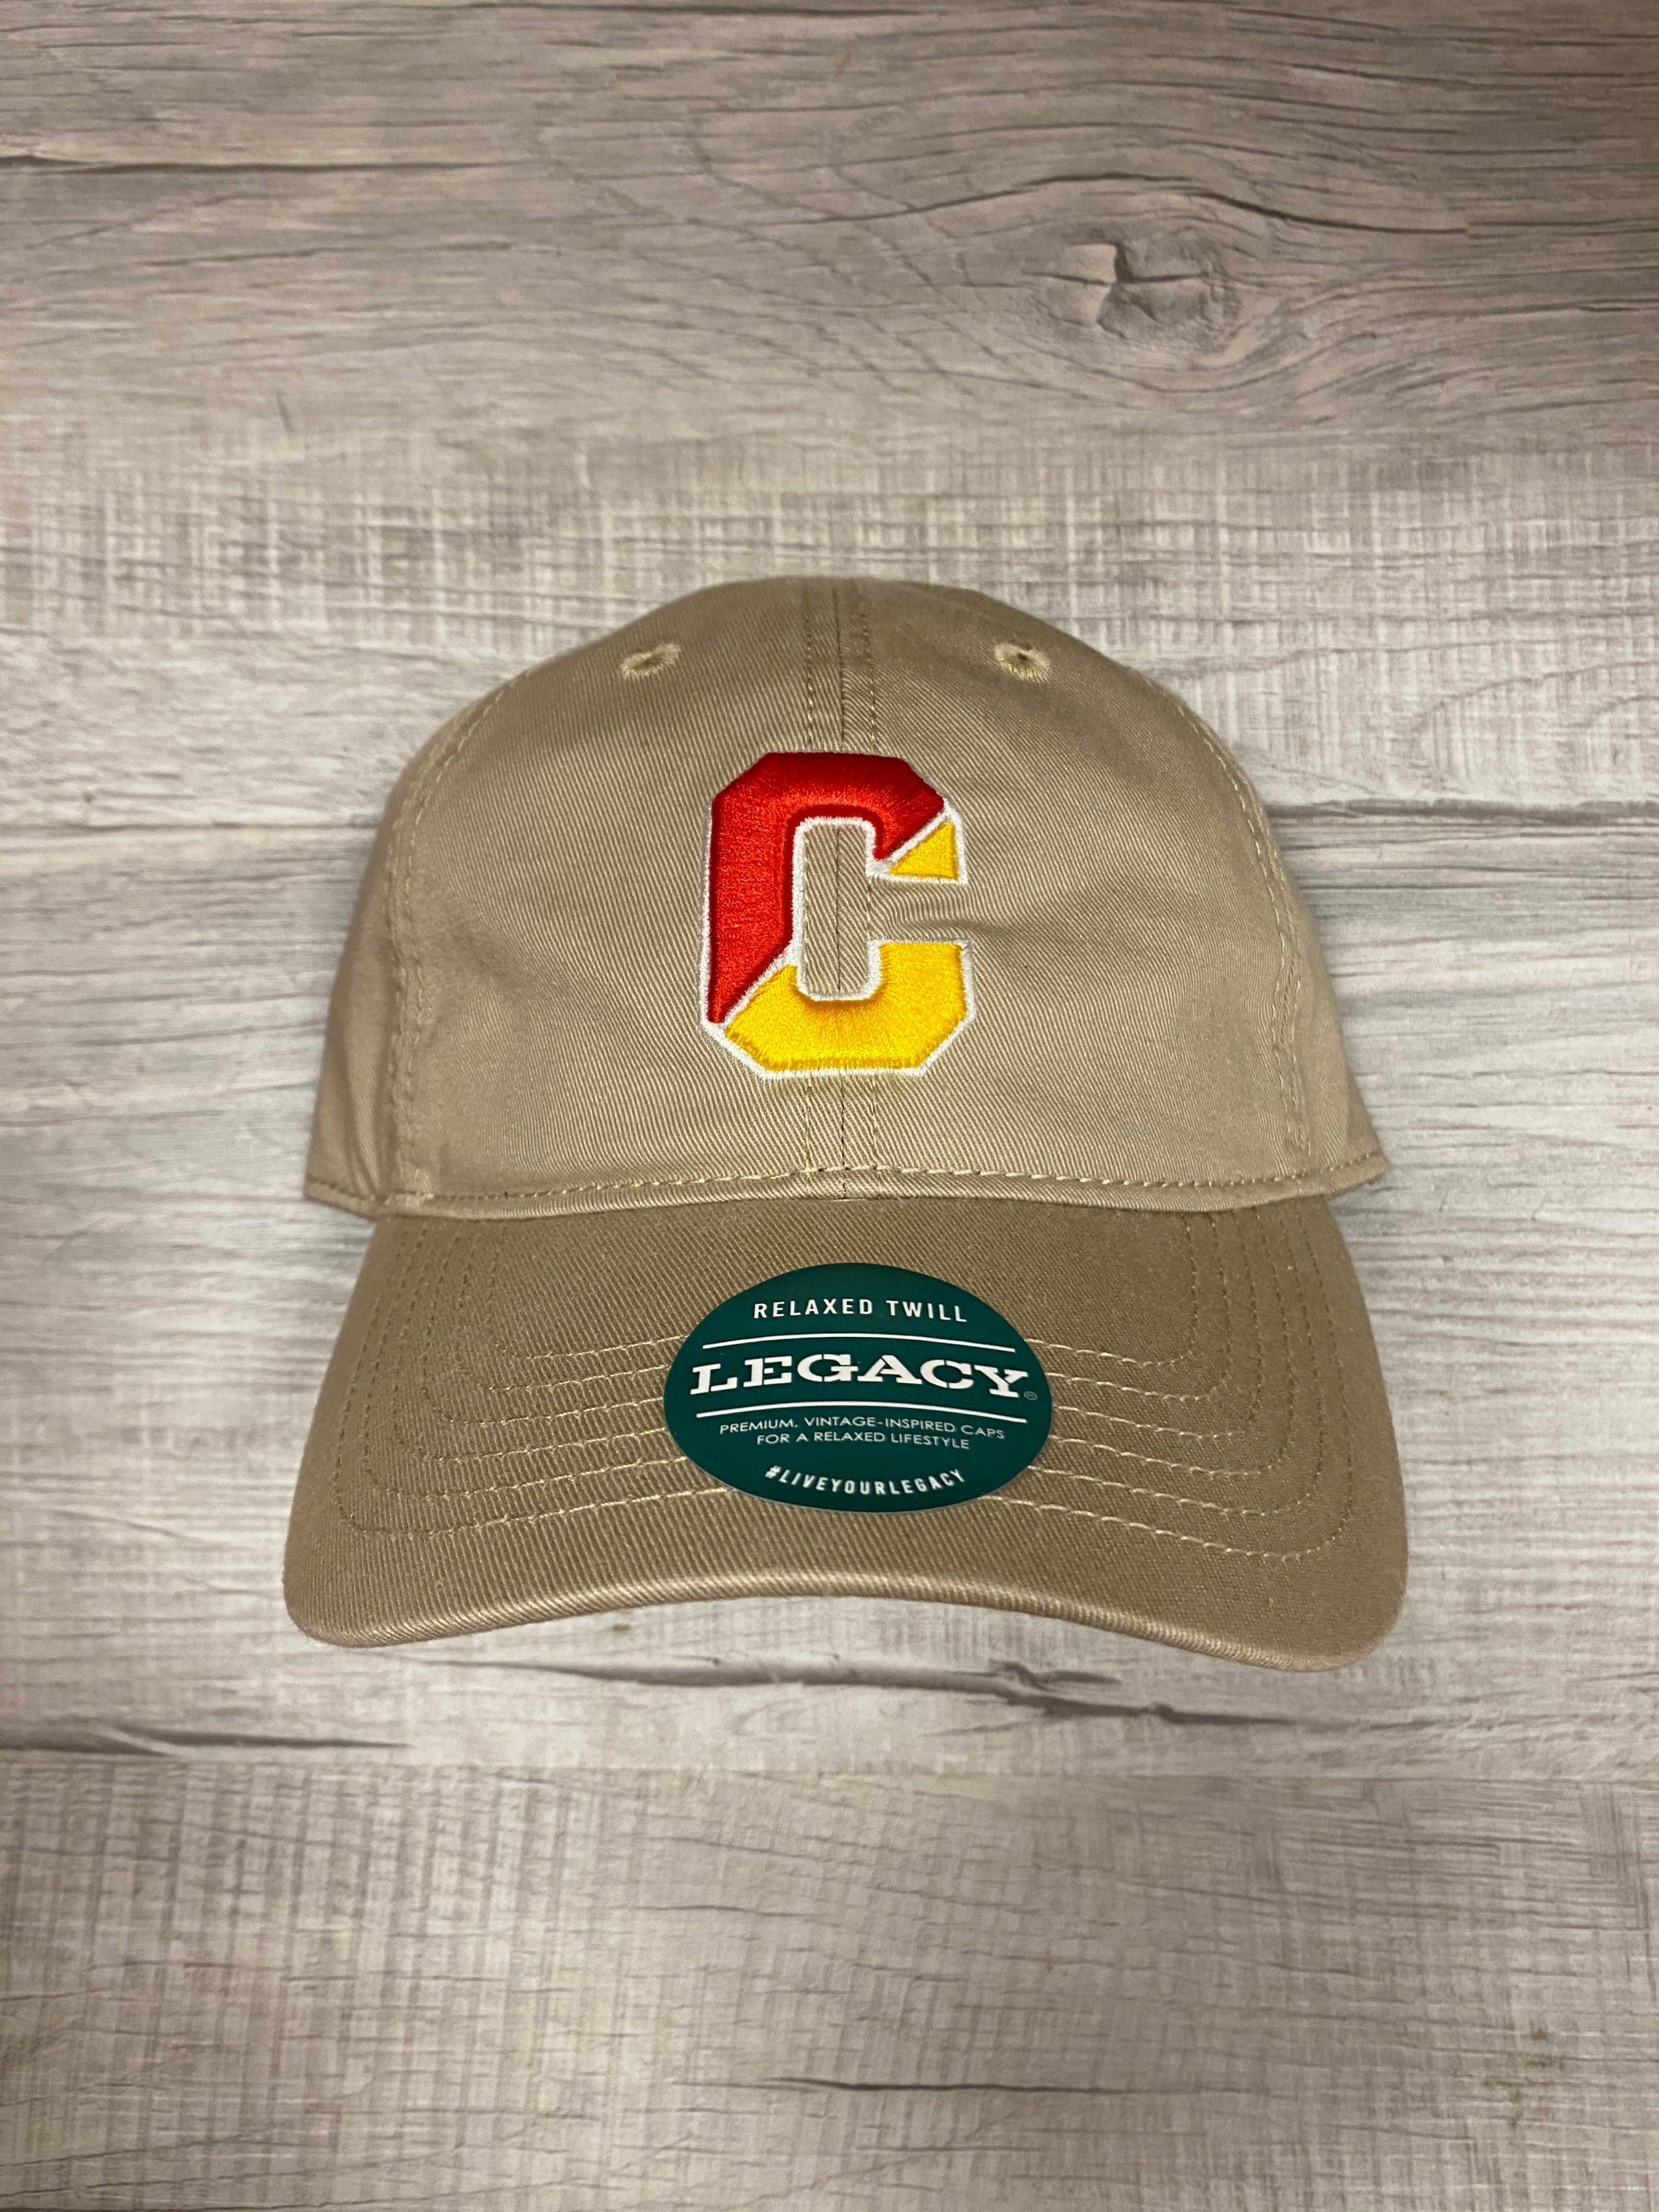 Legacy Khaki Relaxed Twill Hat